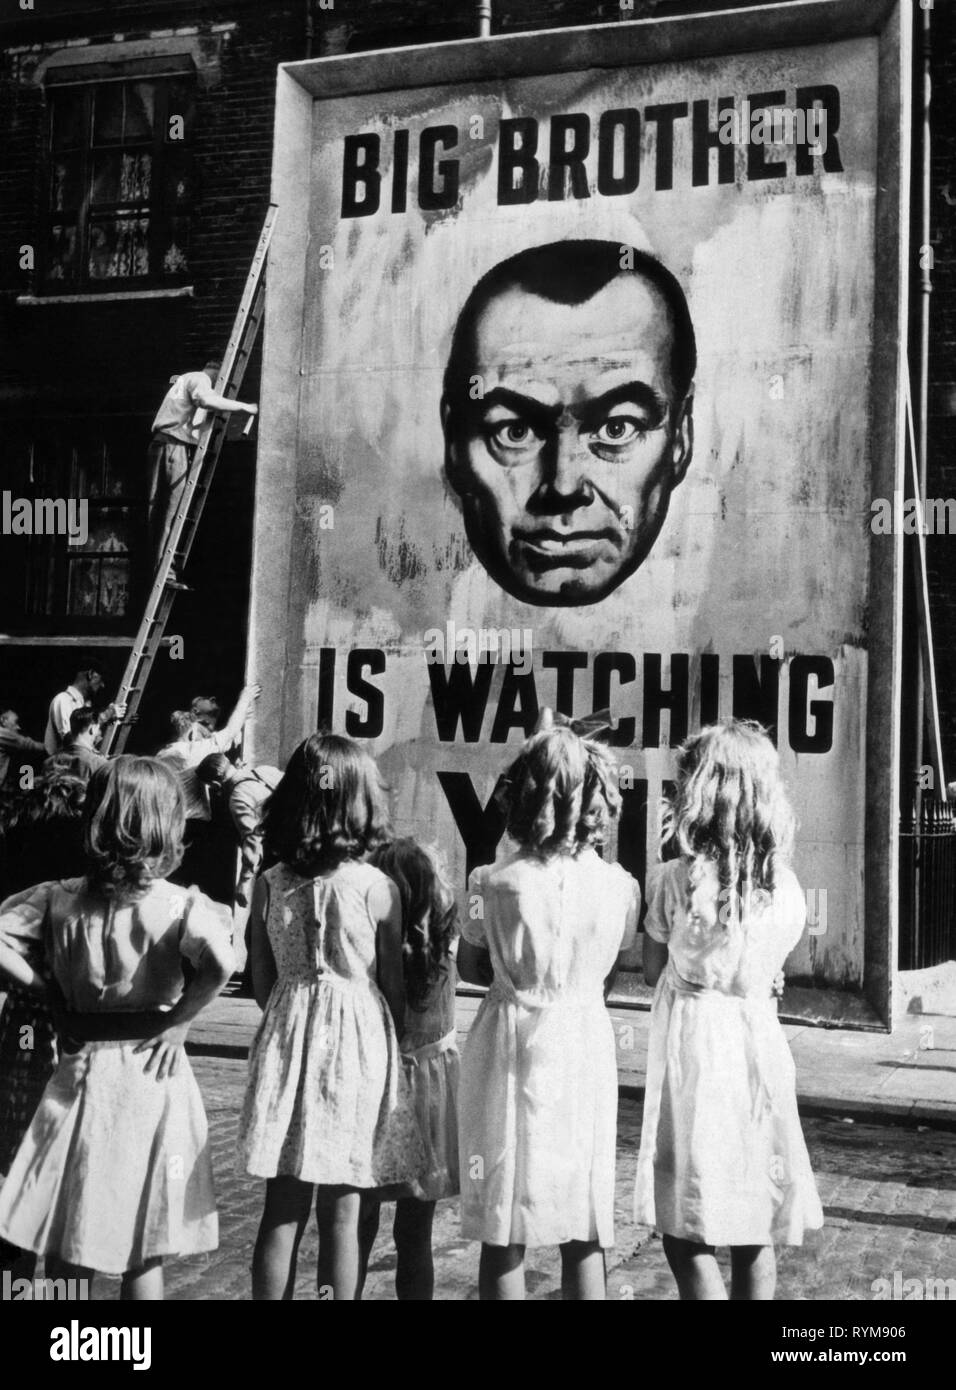 BIG BROTHER IS WATCHING POSTER, 1984, 1956 Stock Photo